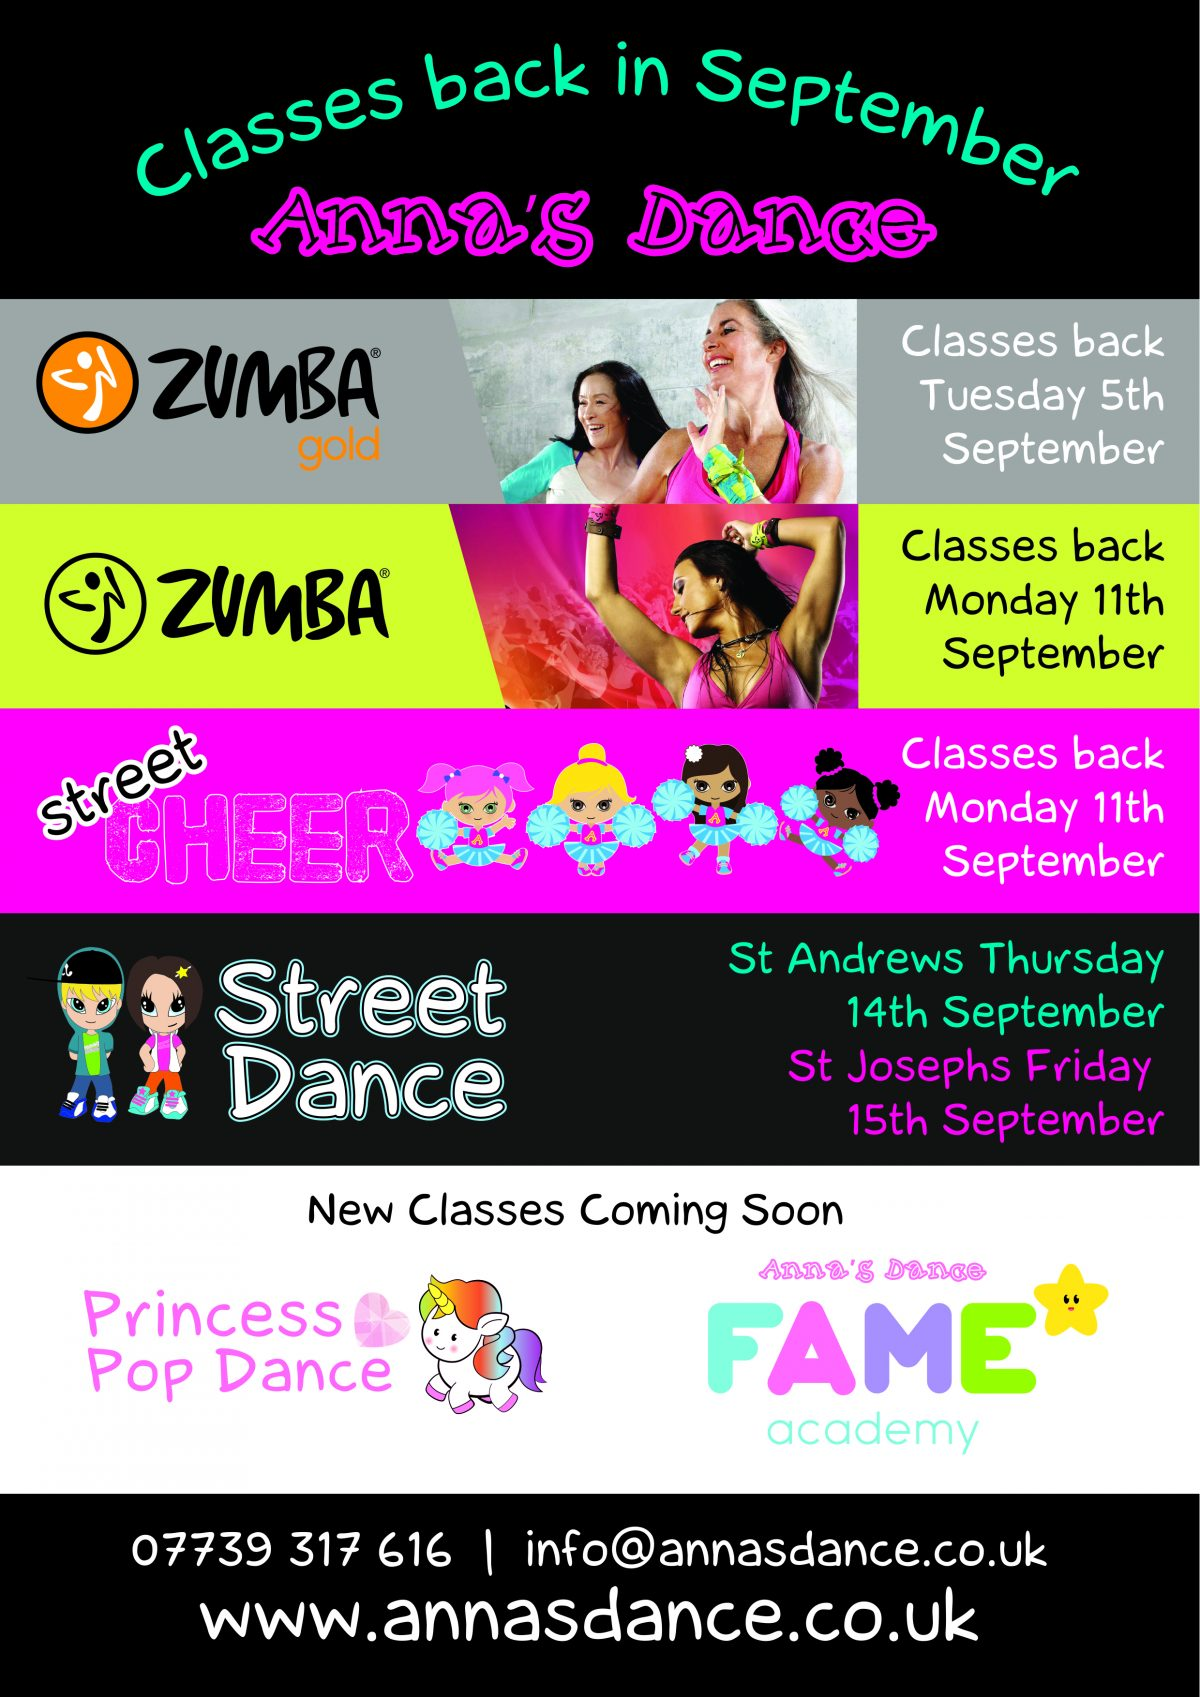 Street Cheer and Street Dance back this week